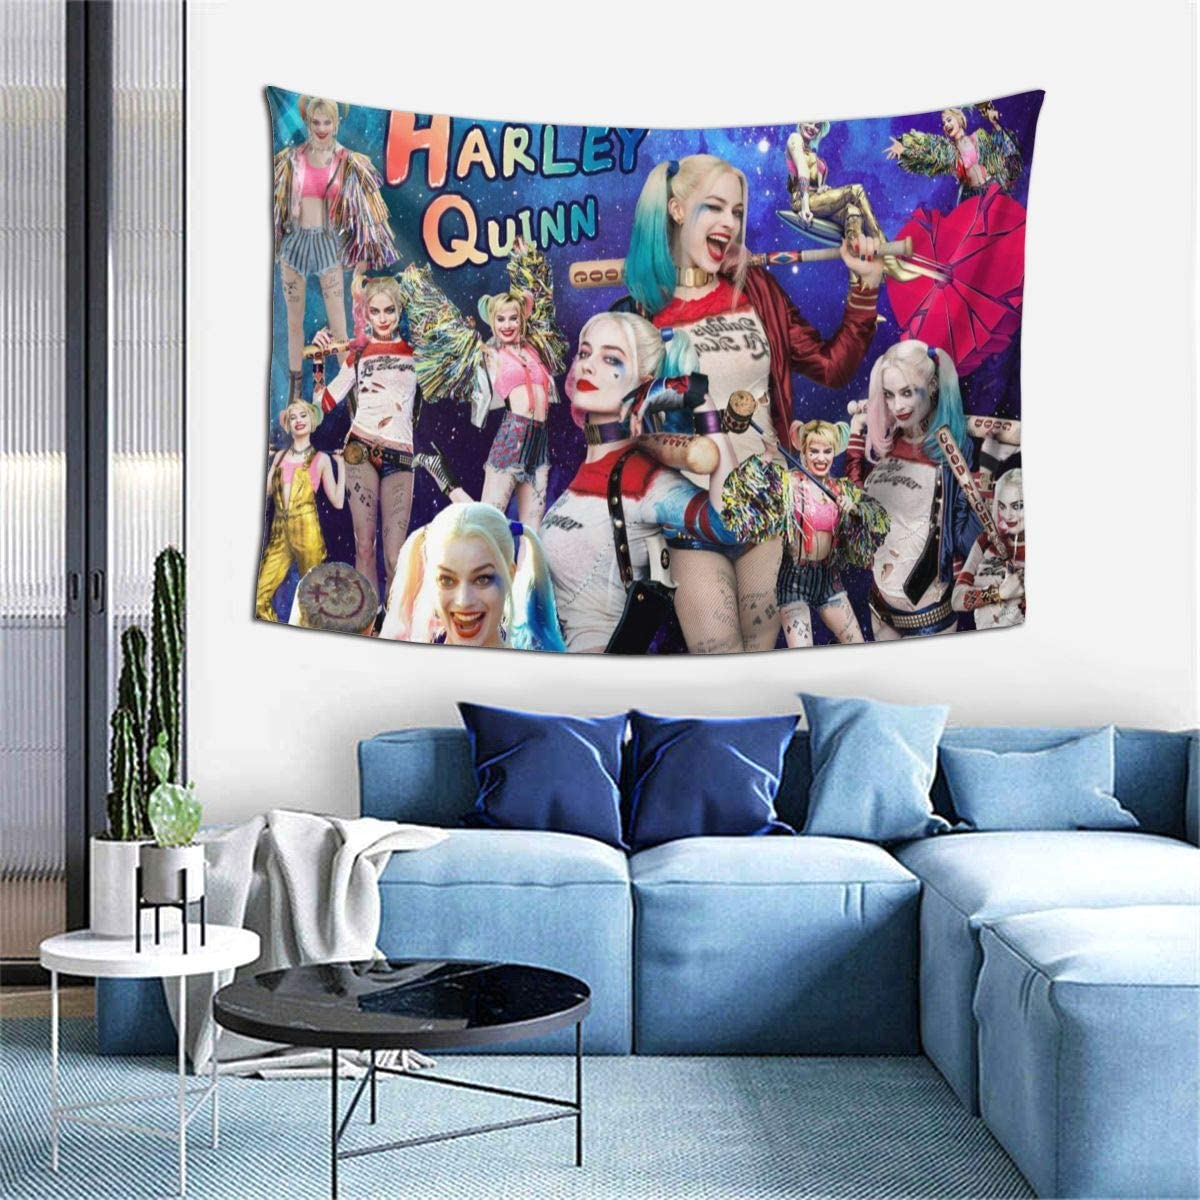 GIPHOJO Micro Blanket Harley Quinn Wall Hanging Bedding Tapestry Decorations Dorm 60x40 Inches / 150x100 Cm